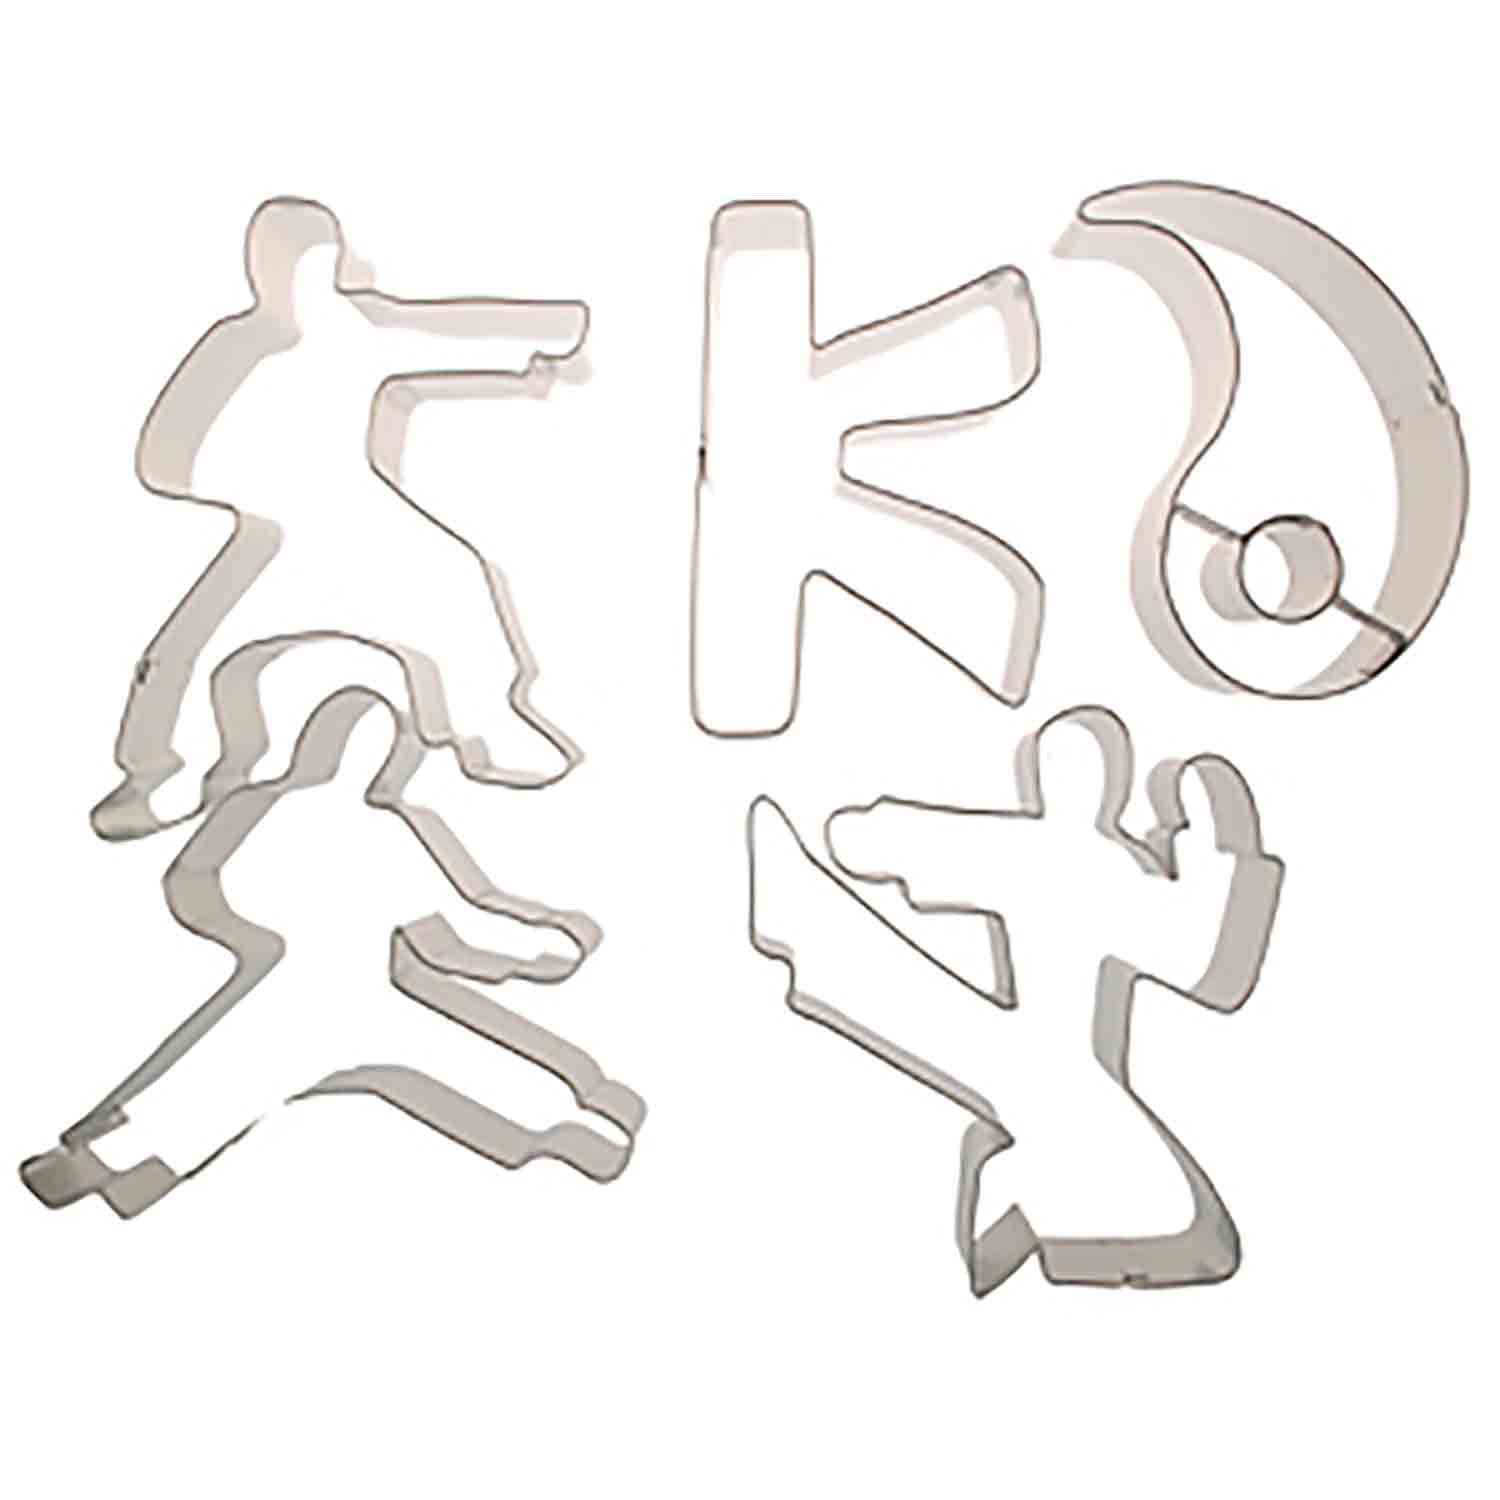 Karate Cookie Cutter Set